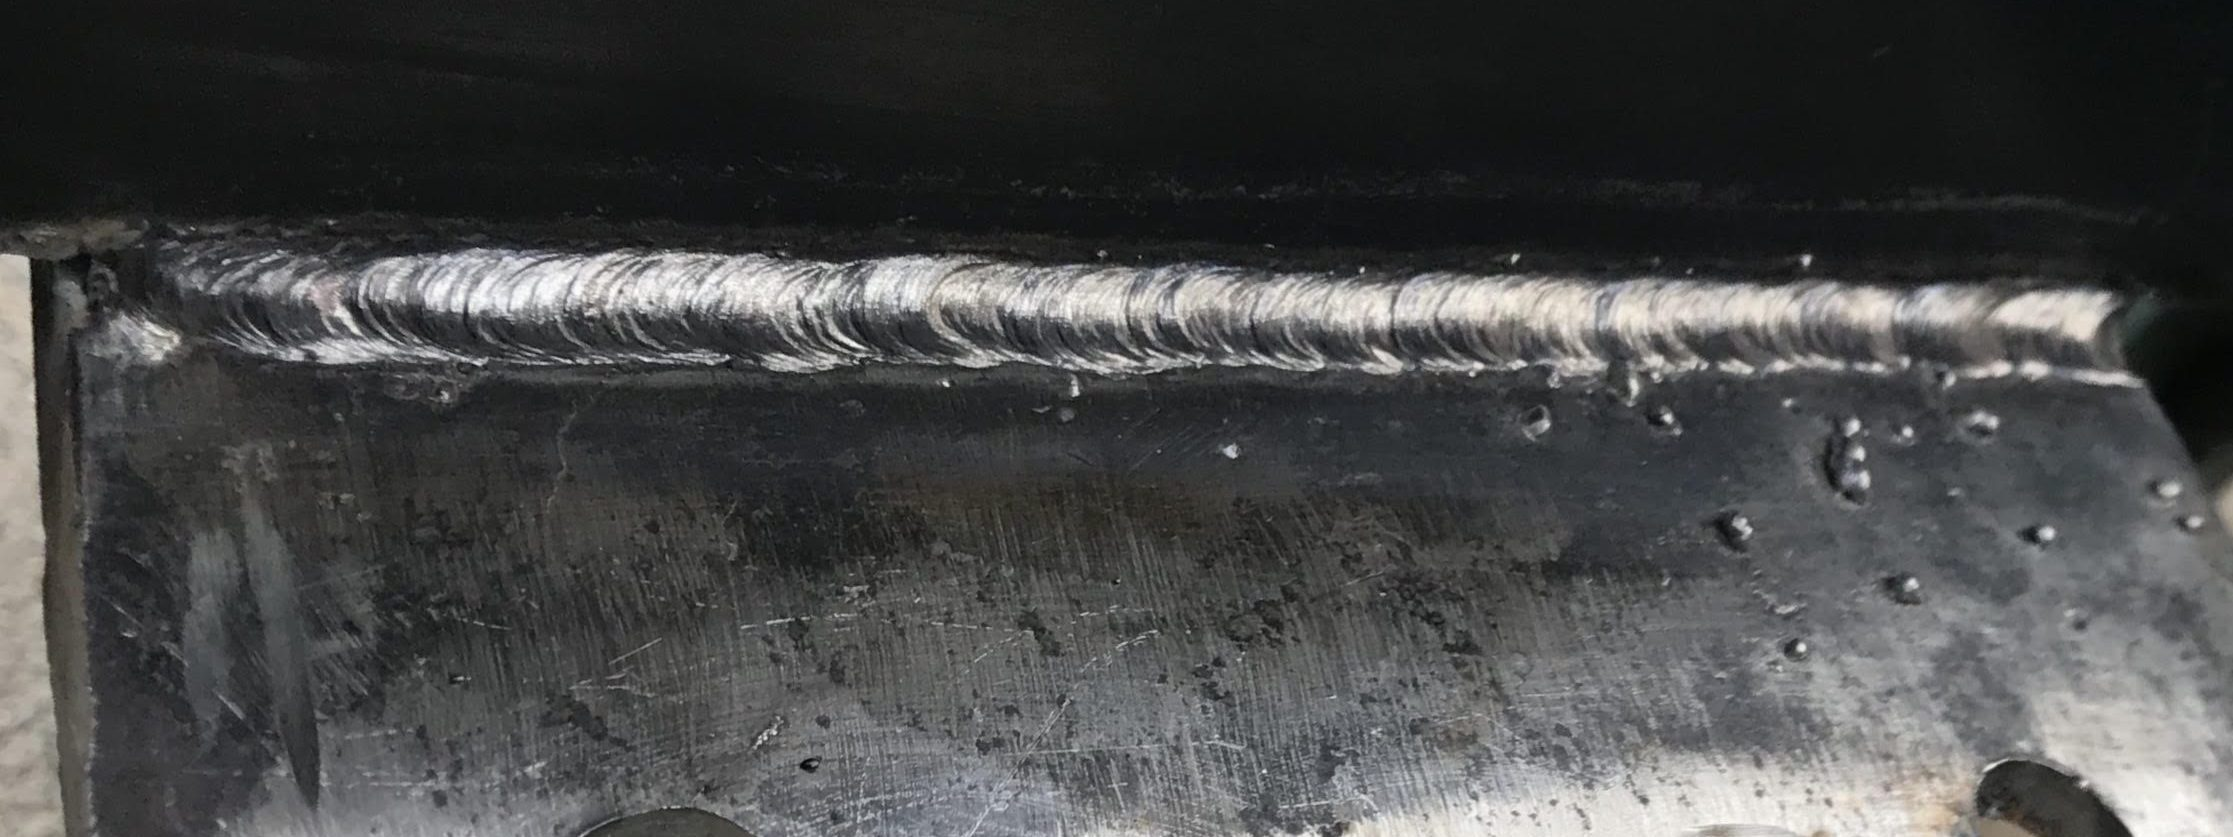 Stick Welding Bead